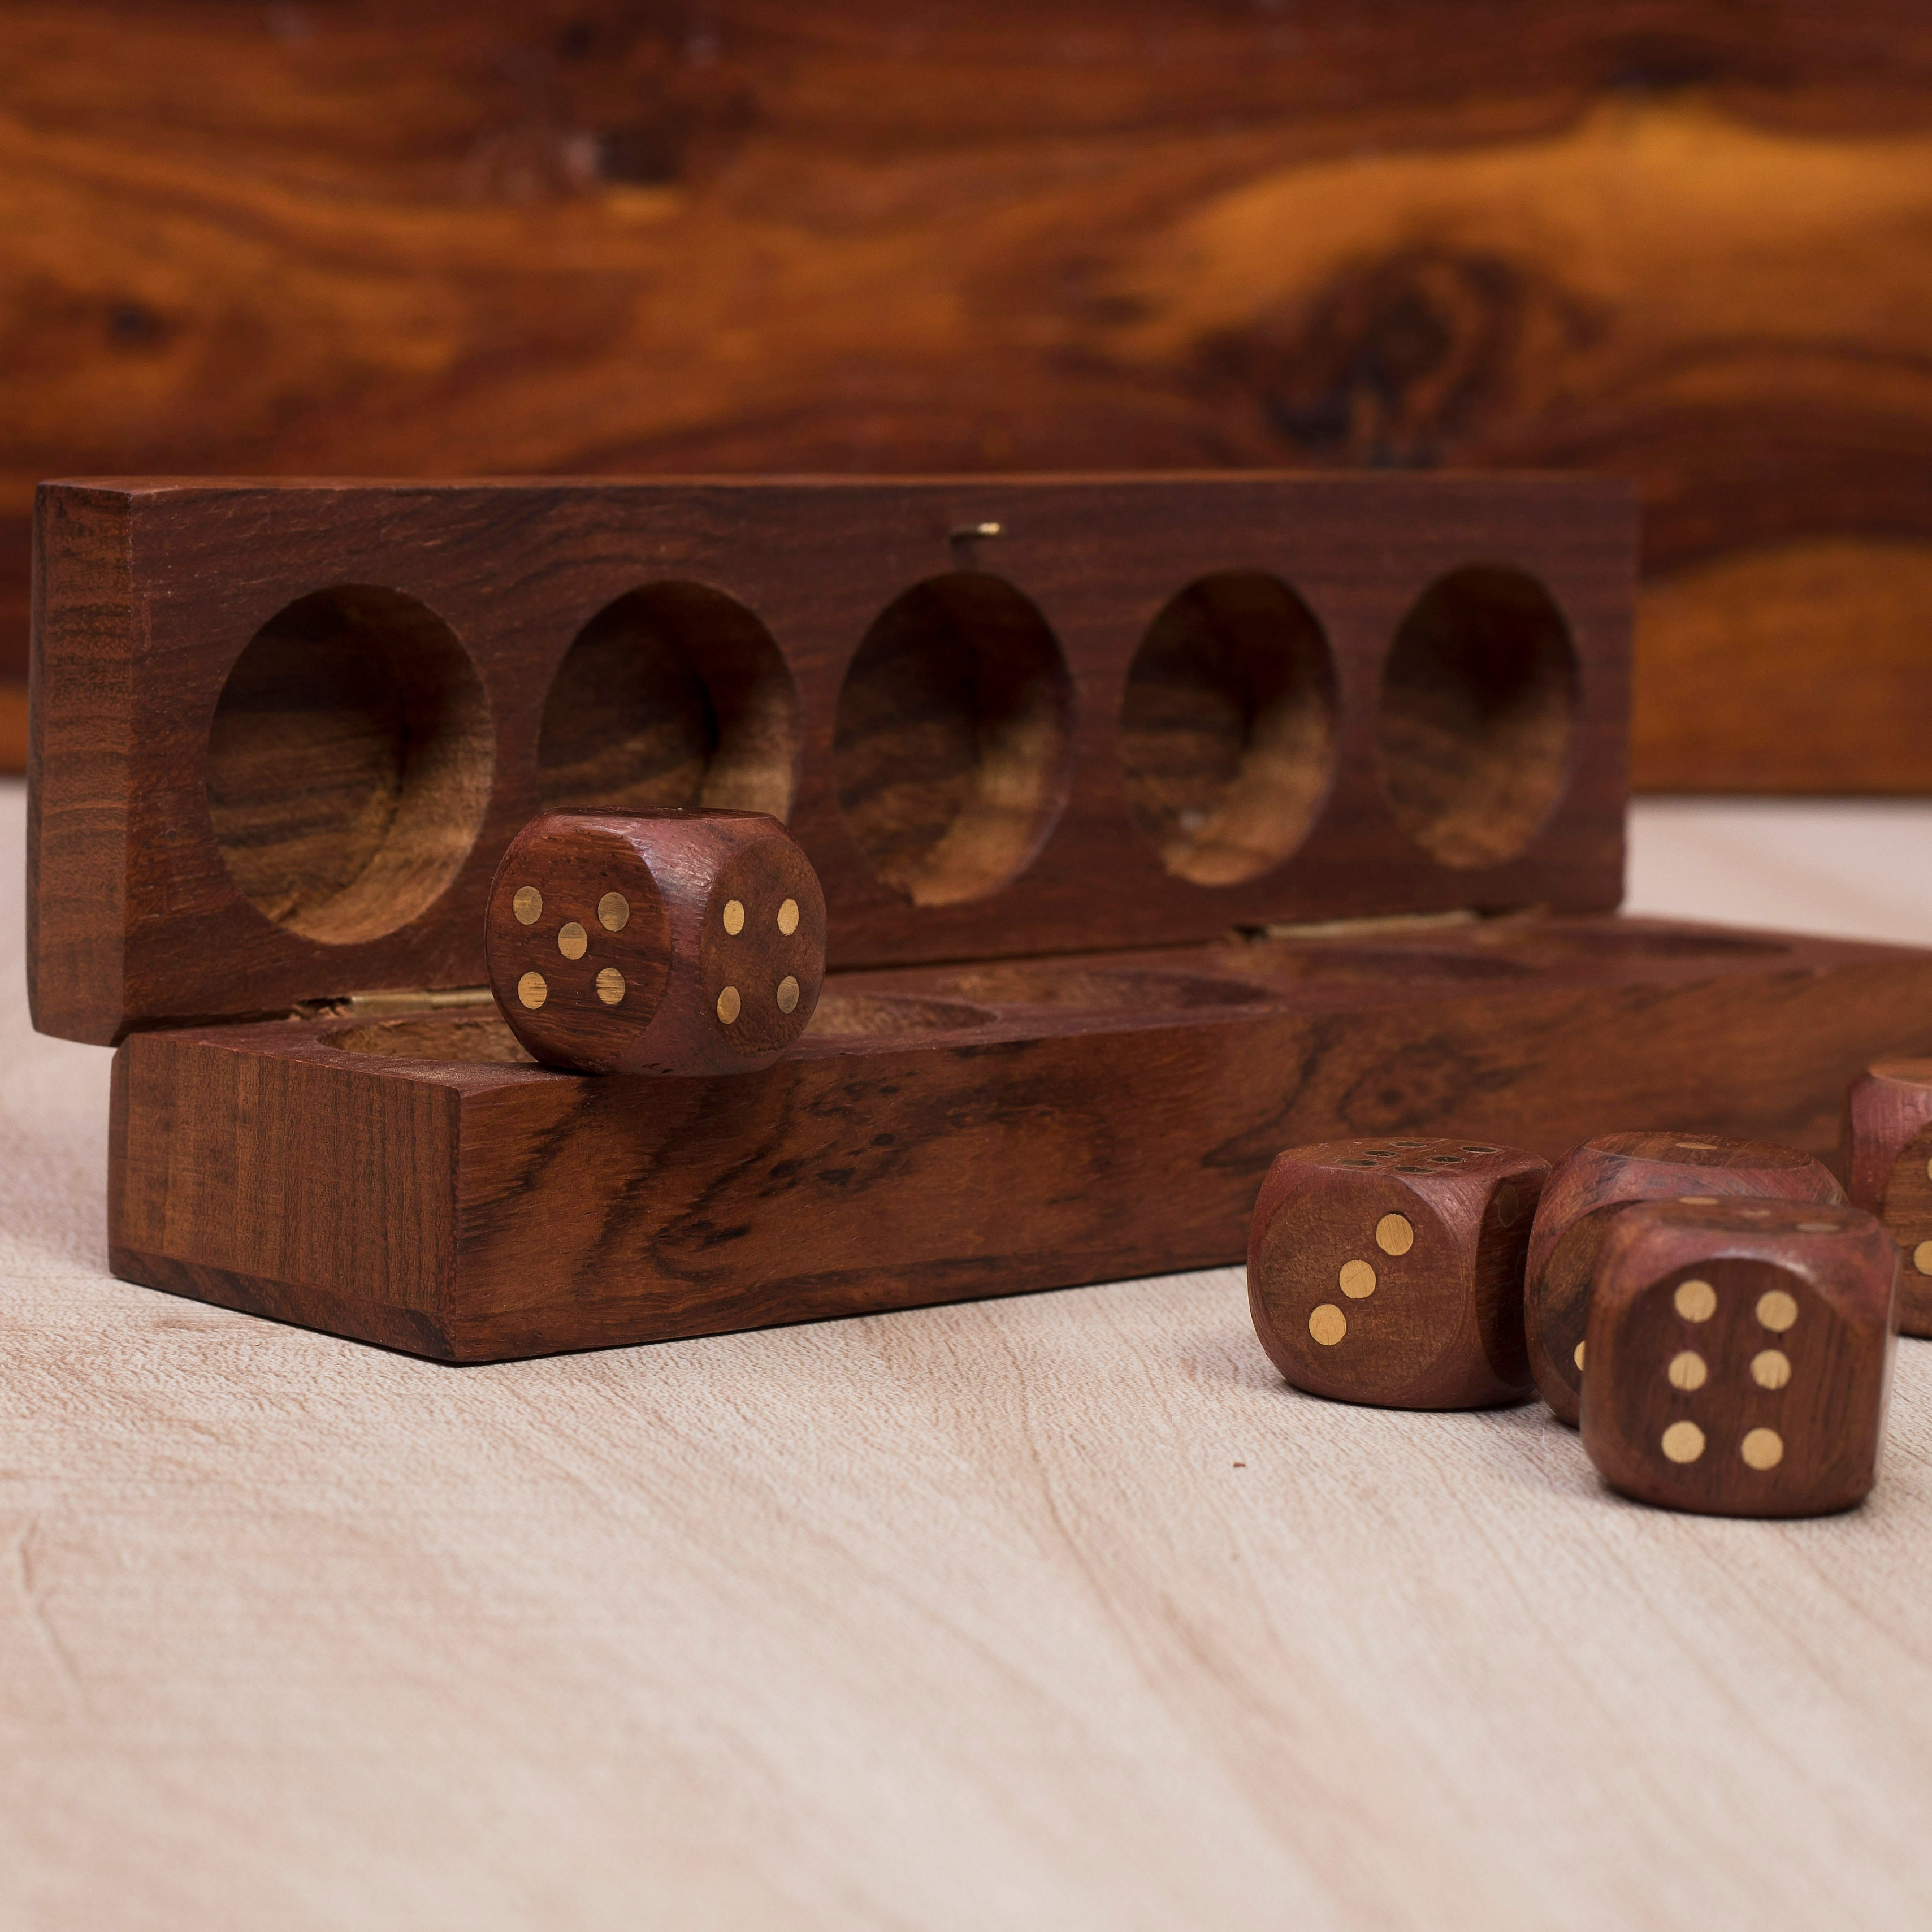 6.2x1.4 in Handmade Rusticity/® Wooden Dice Set of 5 with Holder Box